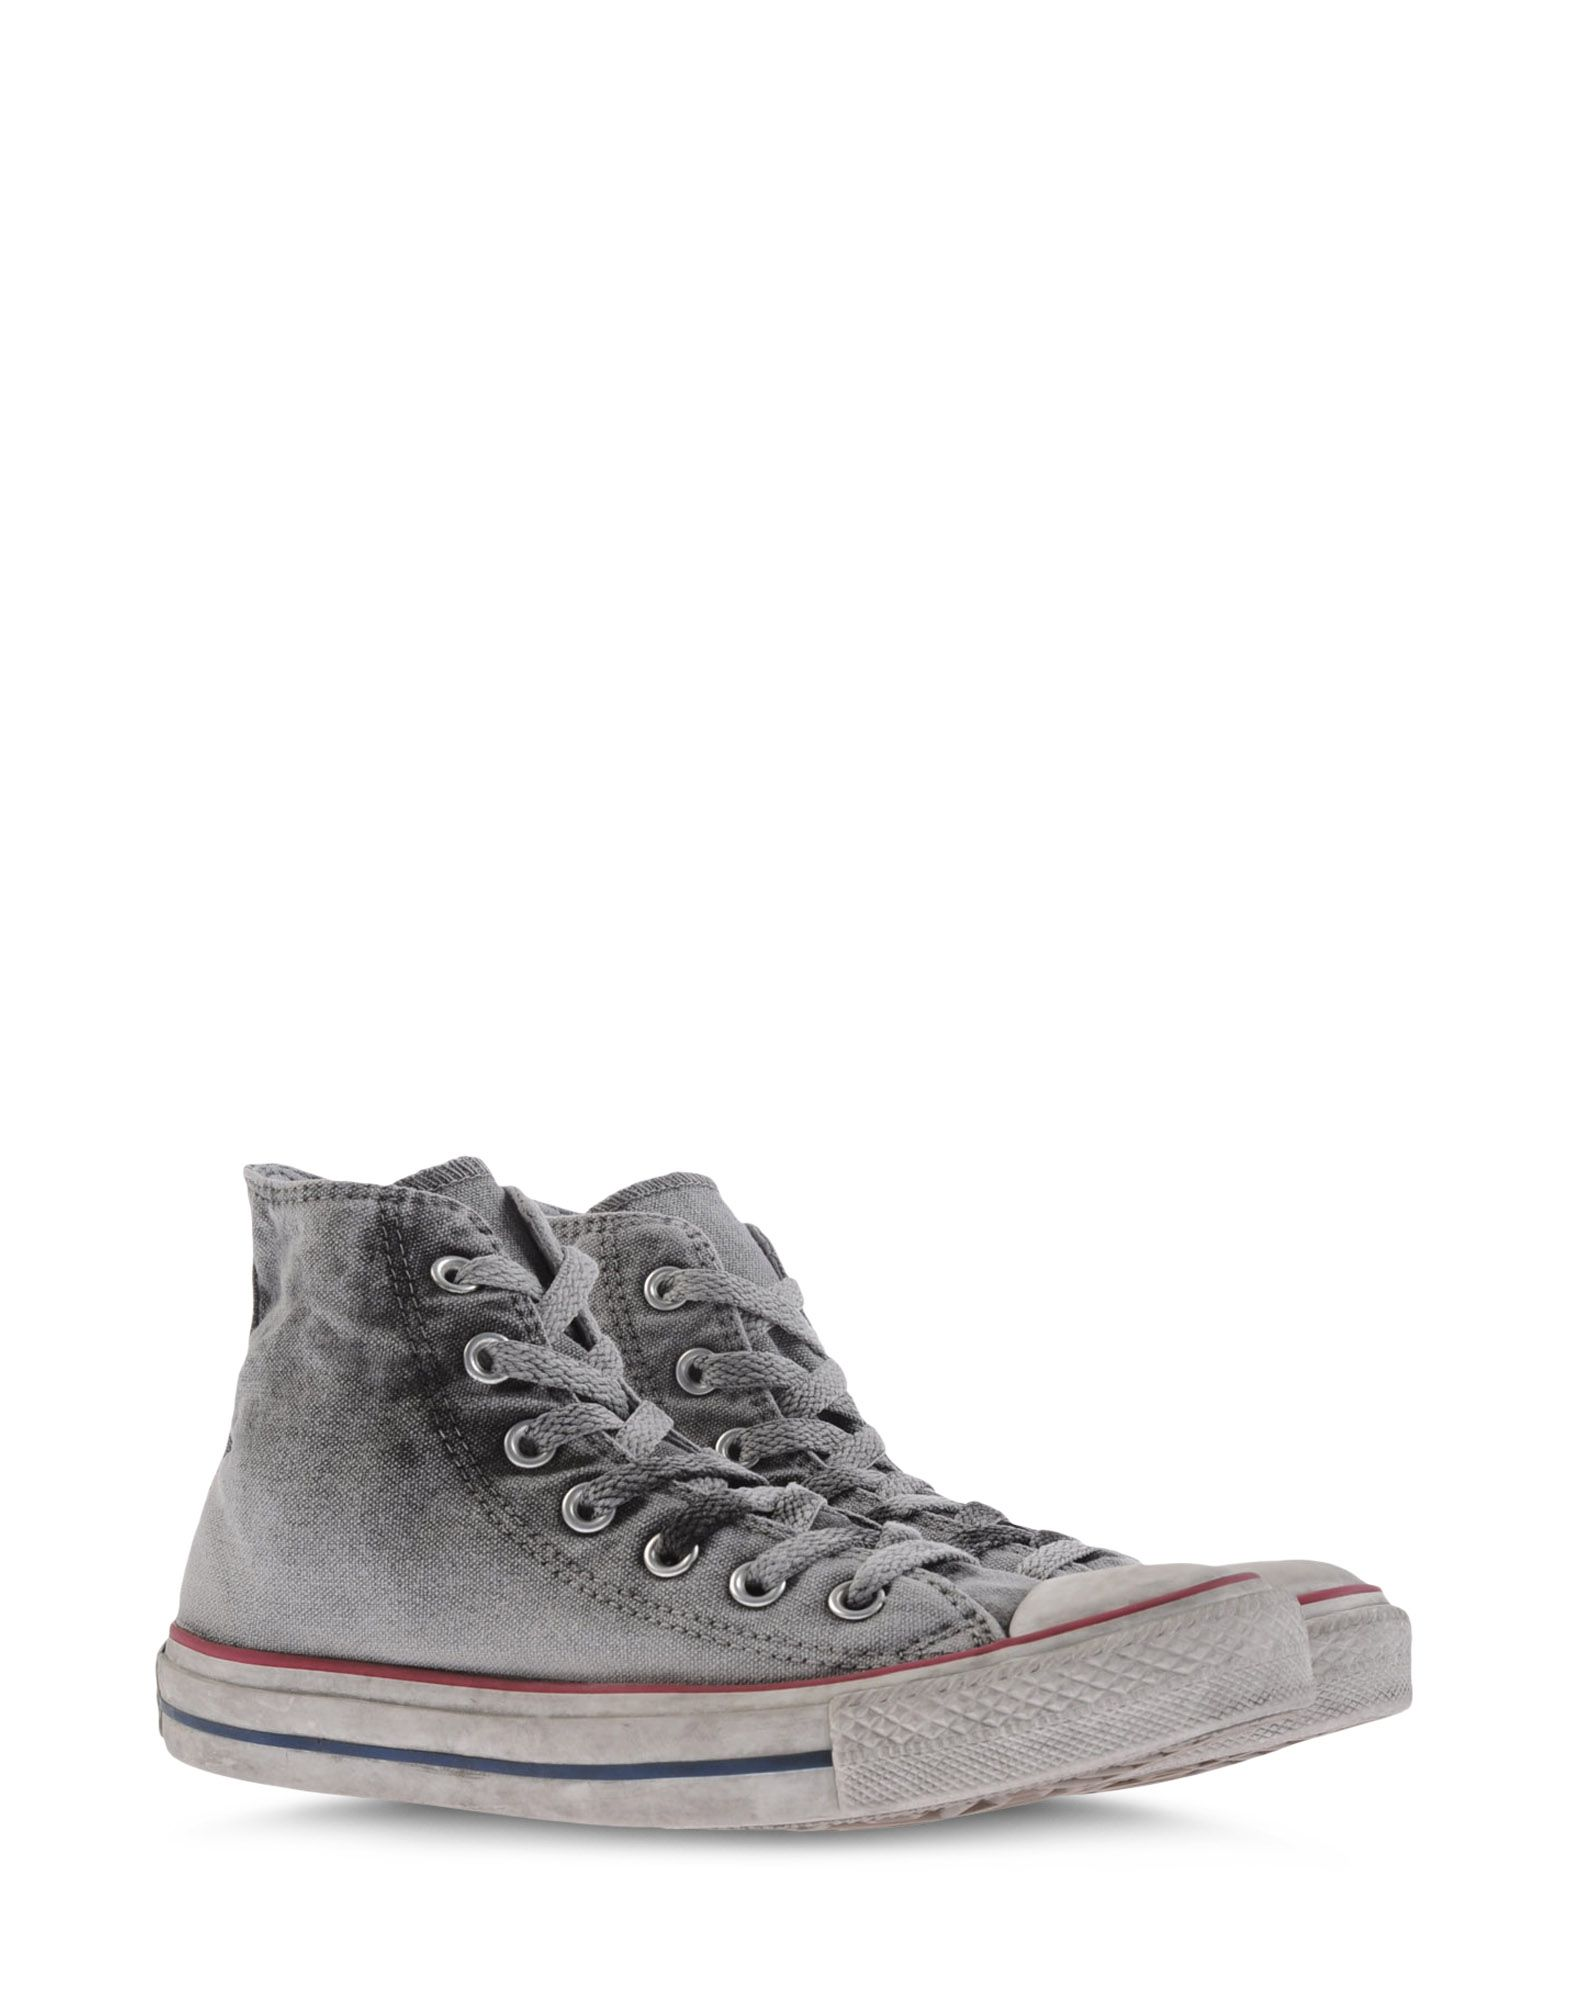 b10e48ddb0a Converse High-tops Trainers in Gray (Light grey)